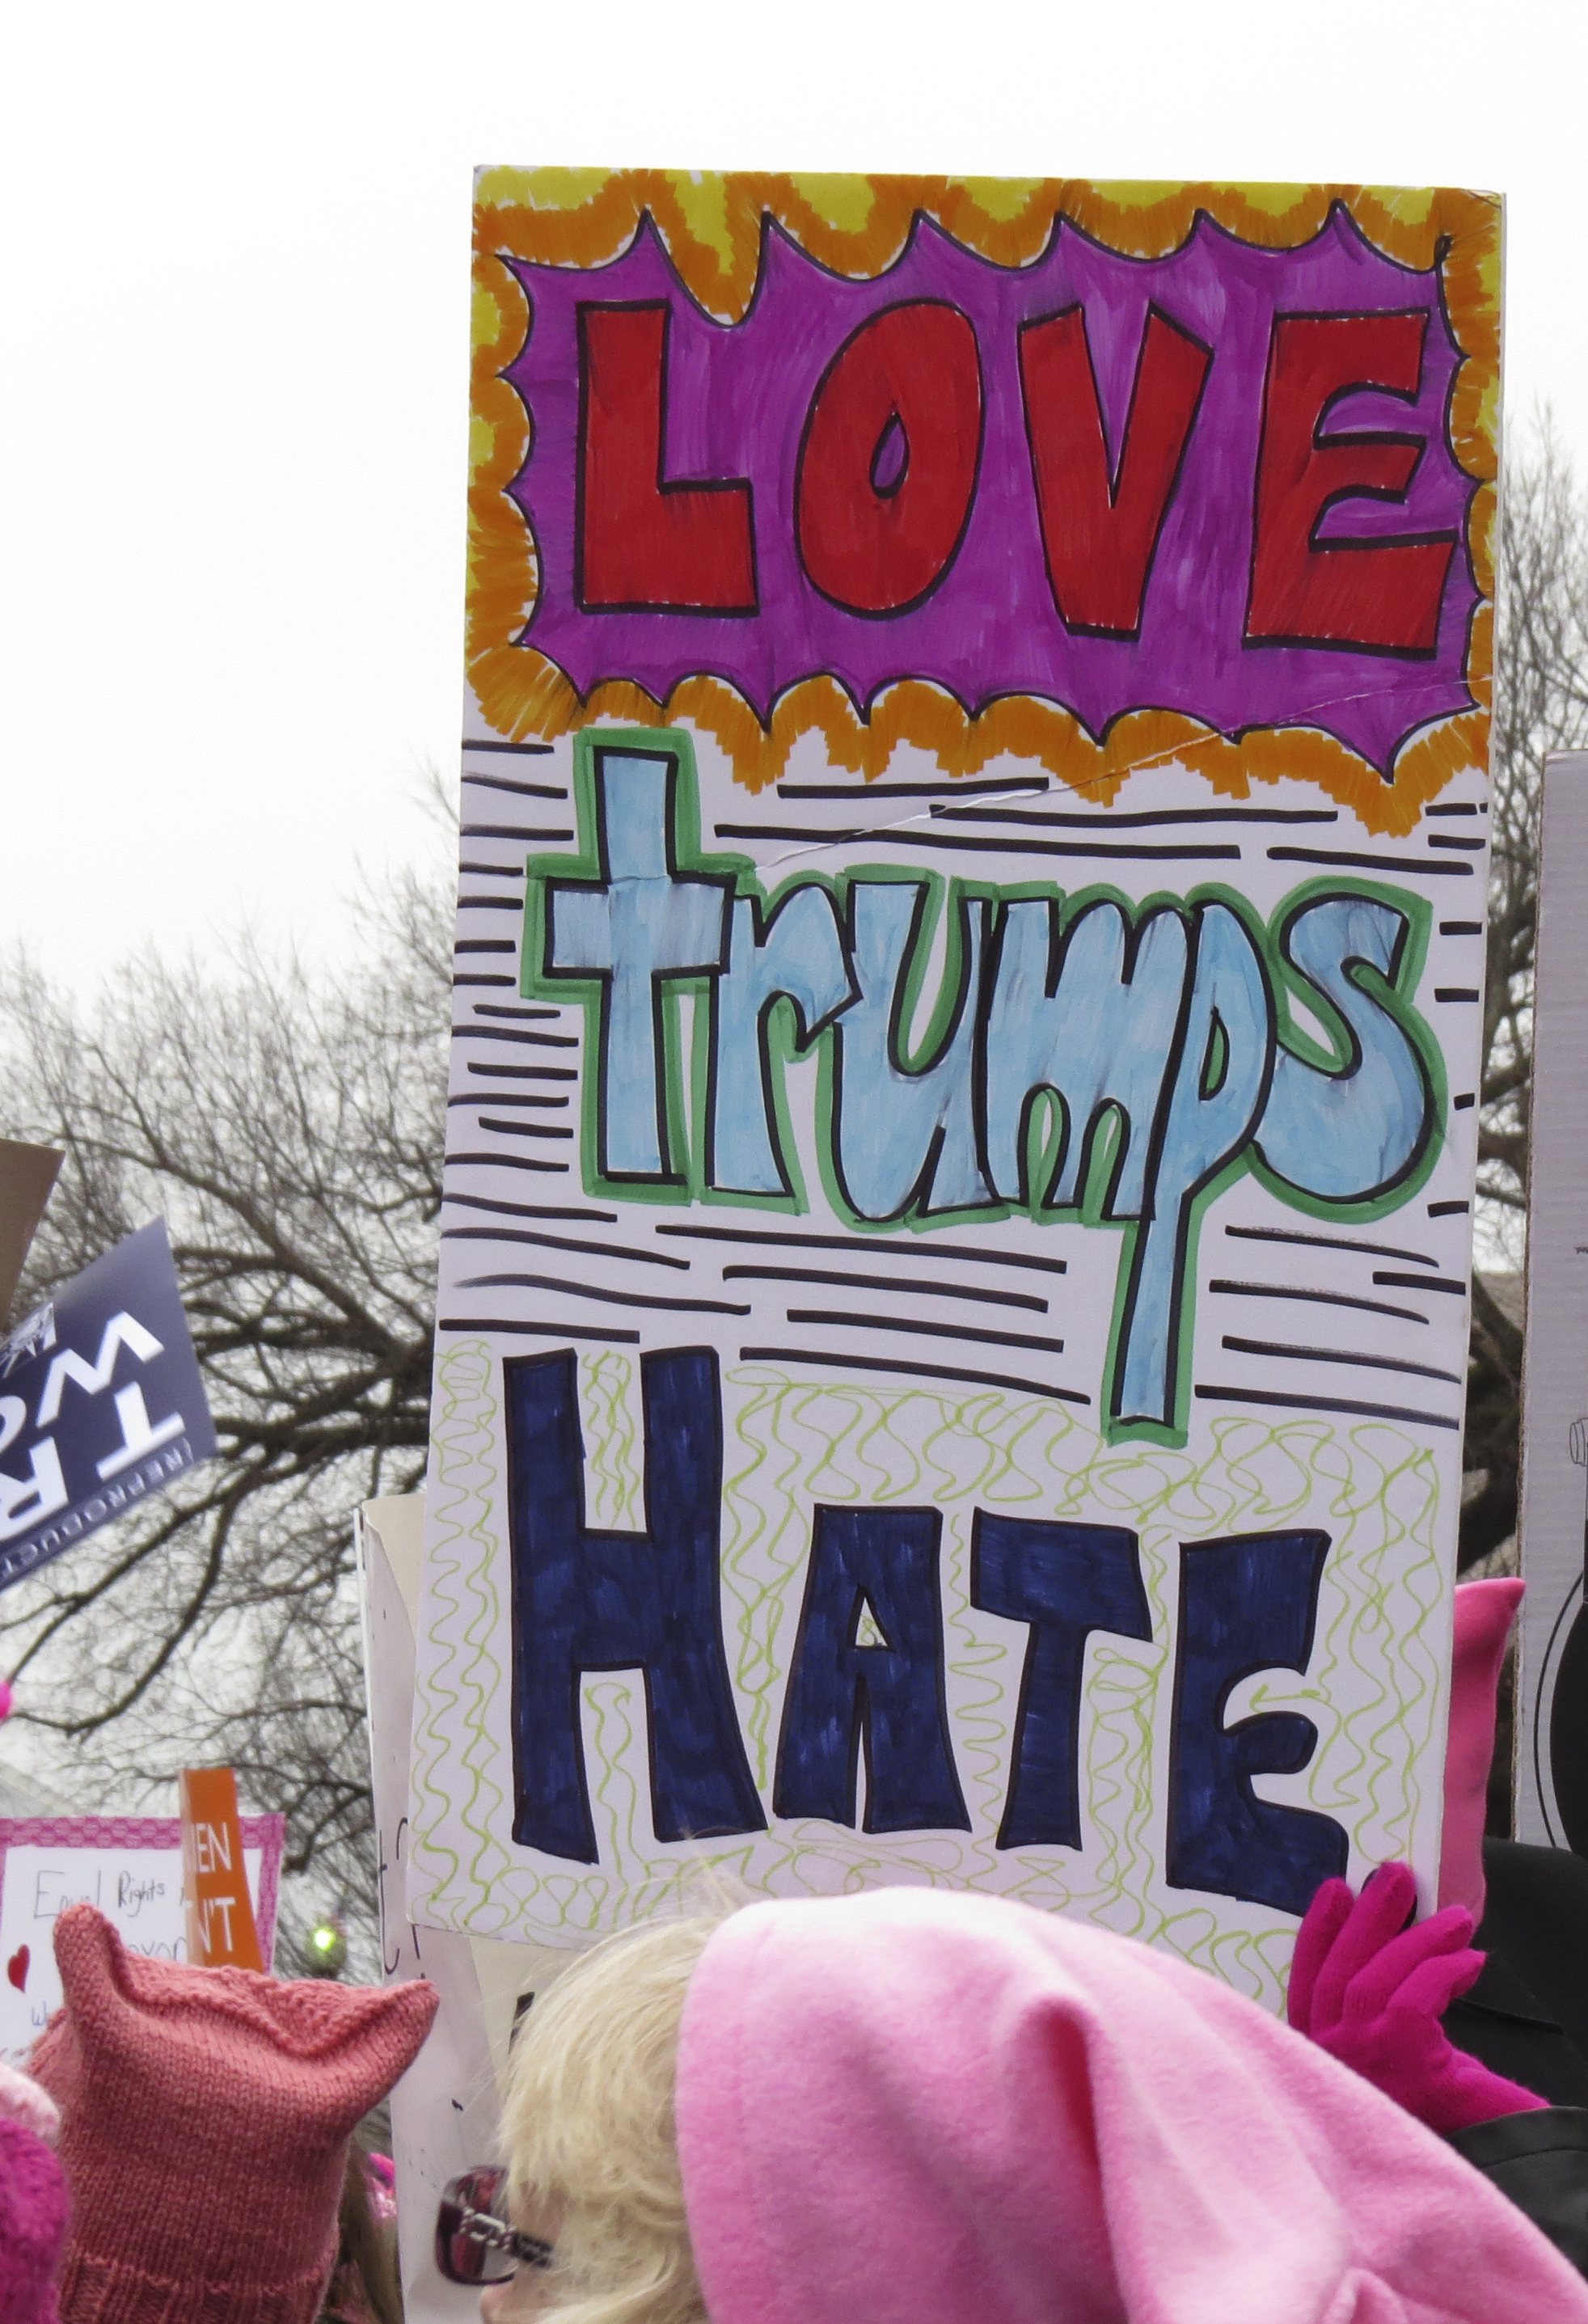 Protest Signs- Women's March on washington